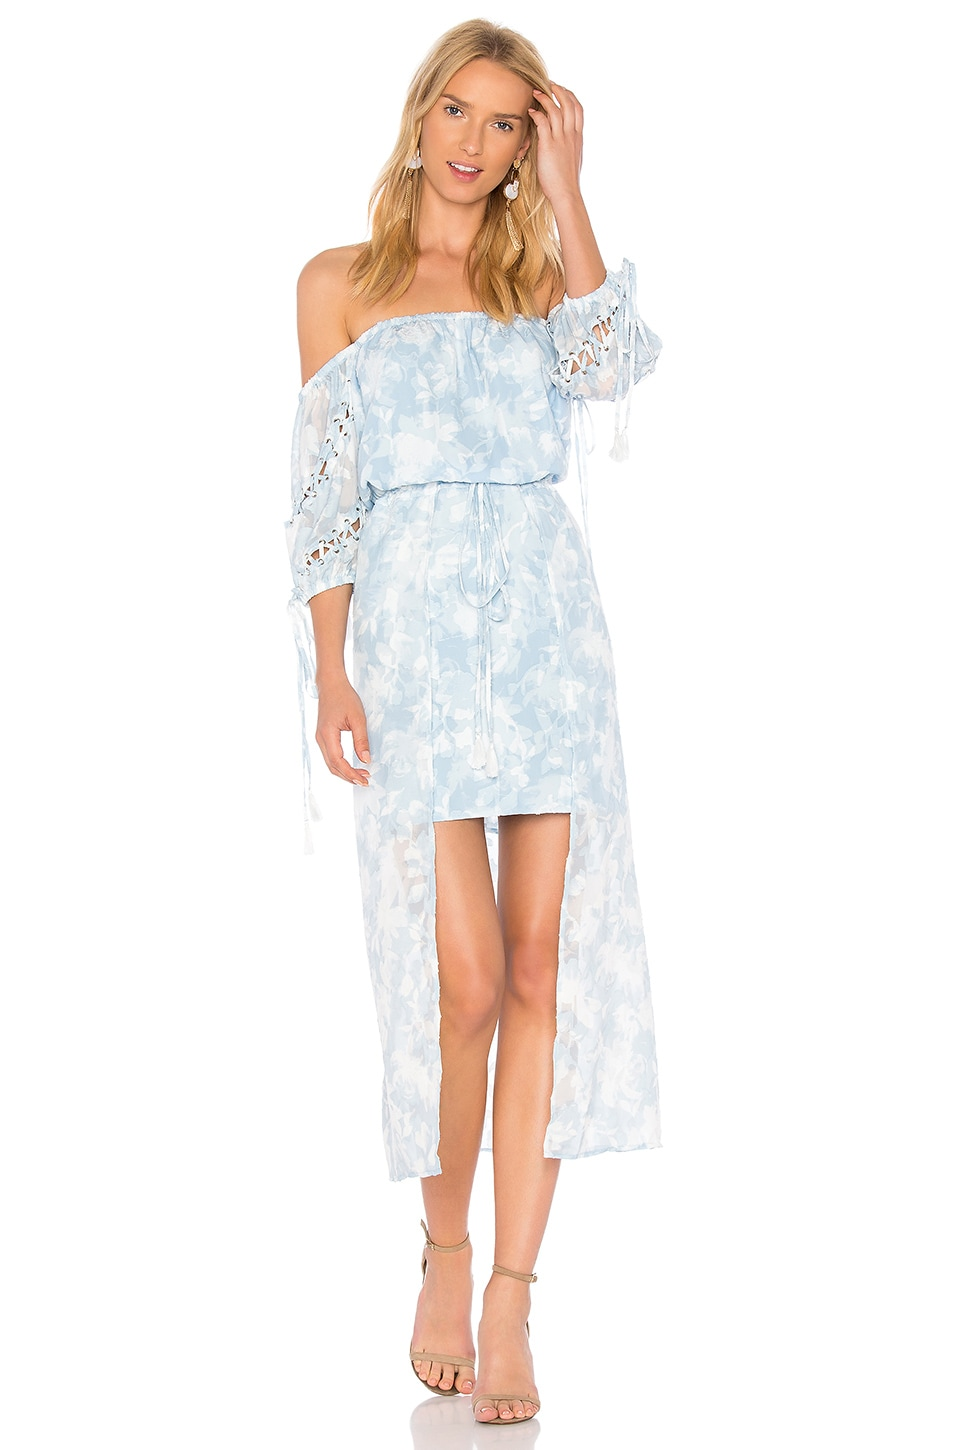 Morning Frost Off Shoulder Dress by We Are Kindred